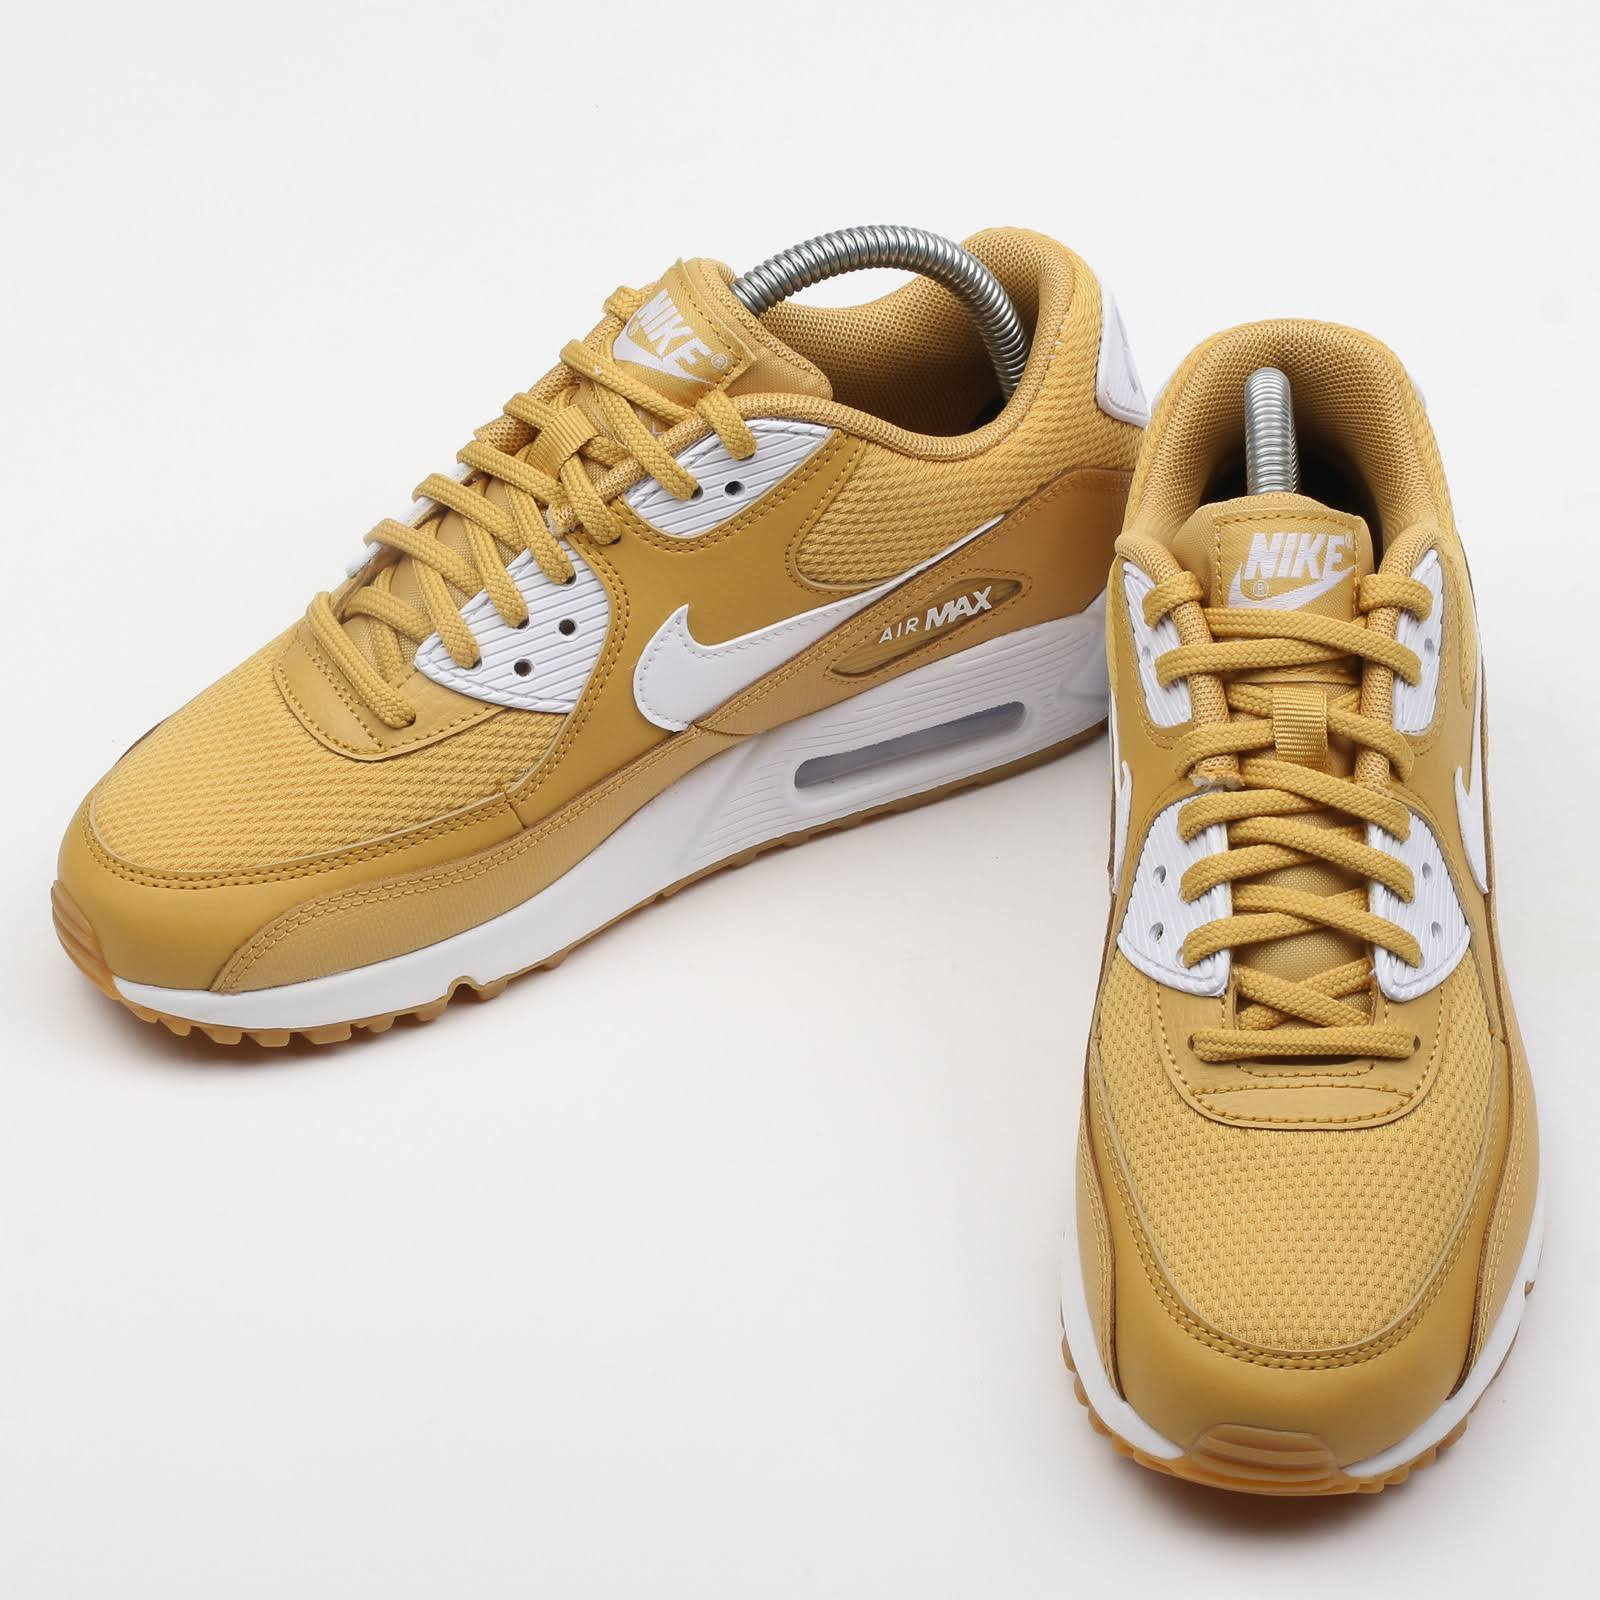 Shoes Wmns Bro Nike 3 Gymnastics Gold Beige 90 Air gum Yellow wheat Women's Max white 5 Light Uk 701 YwwO5q